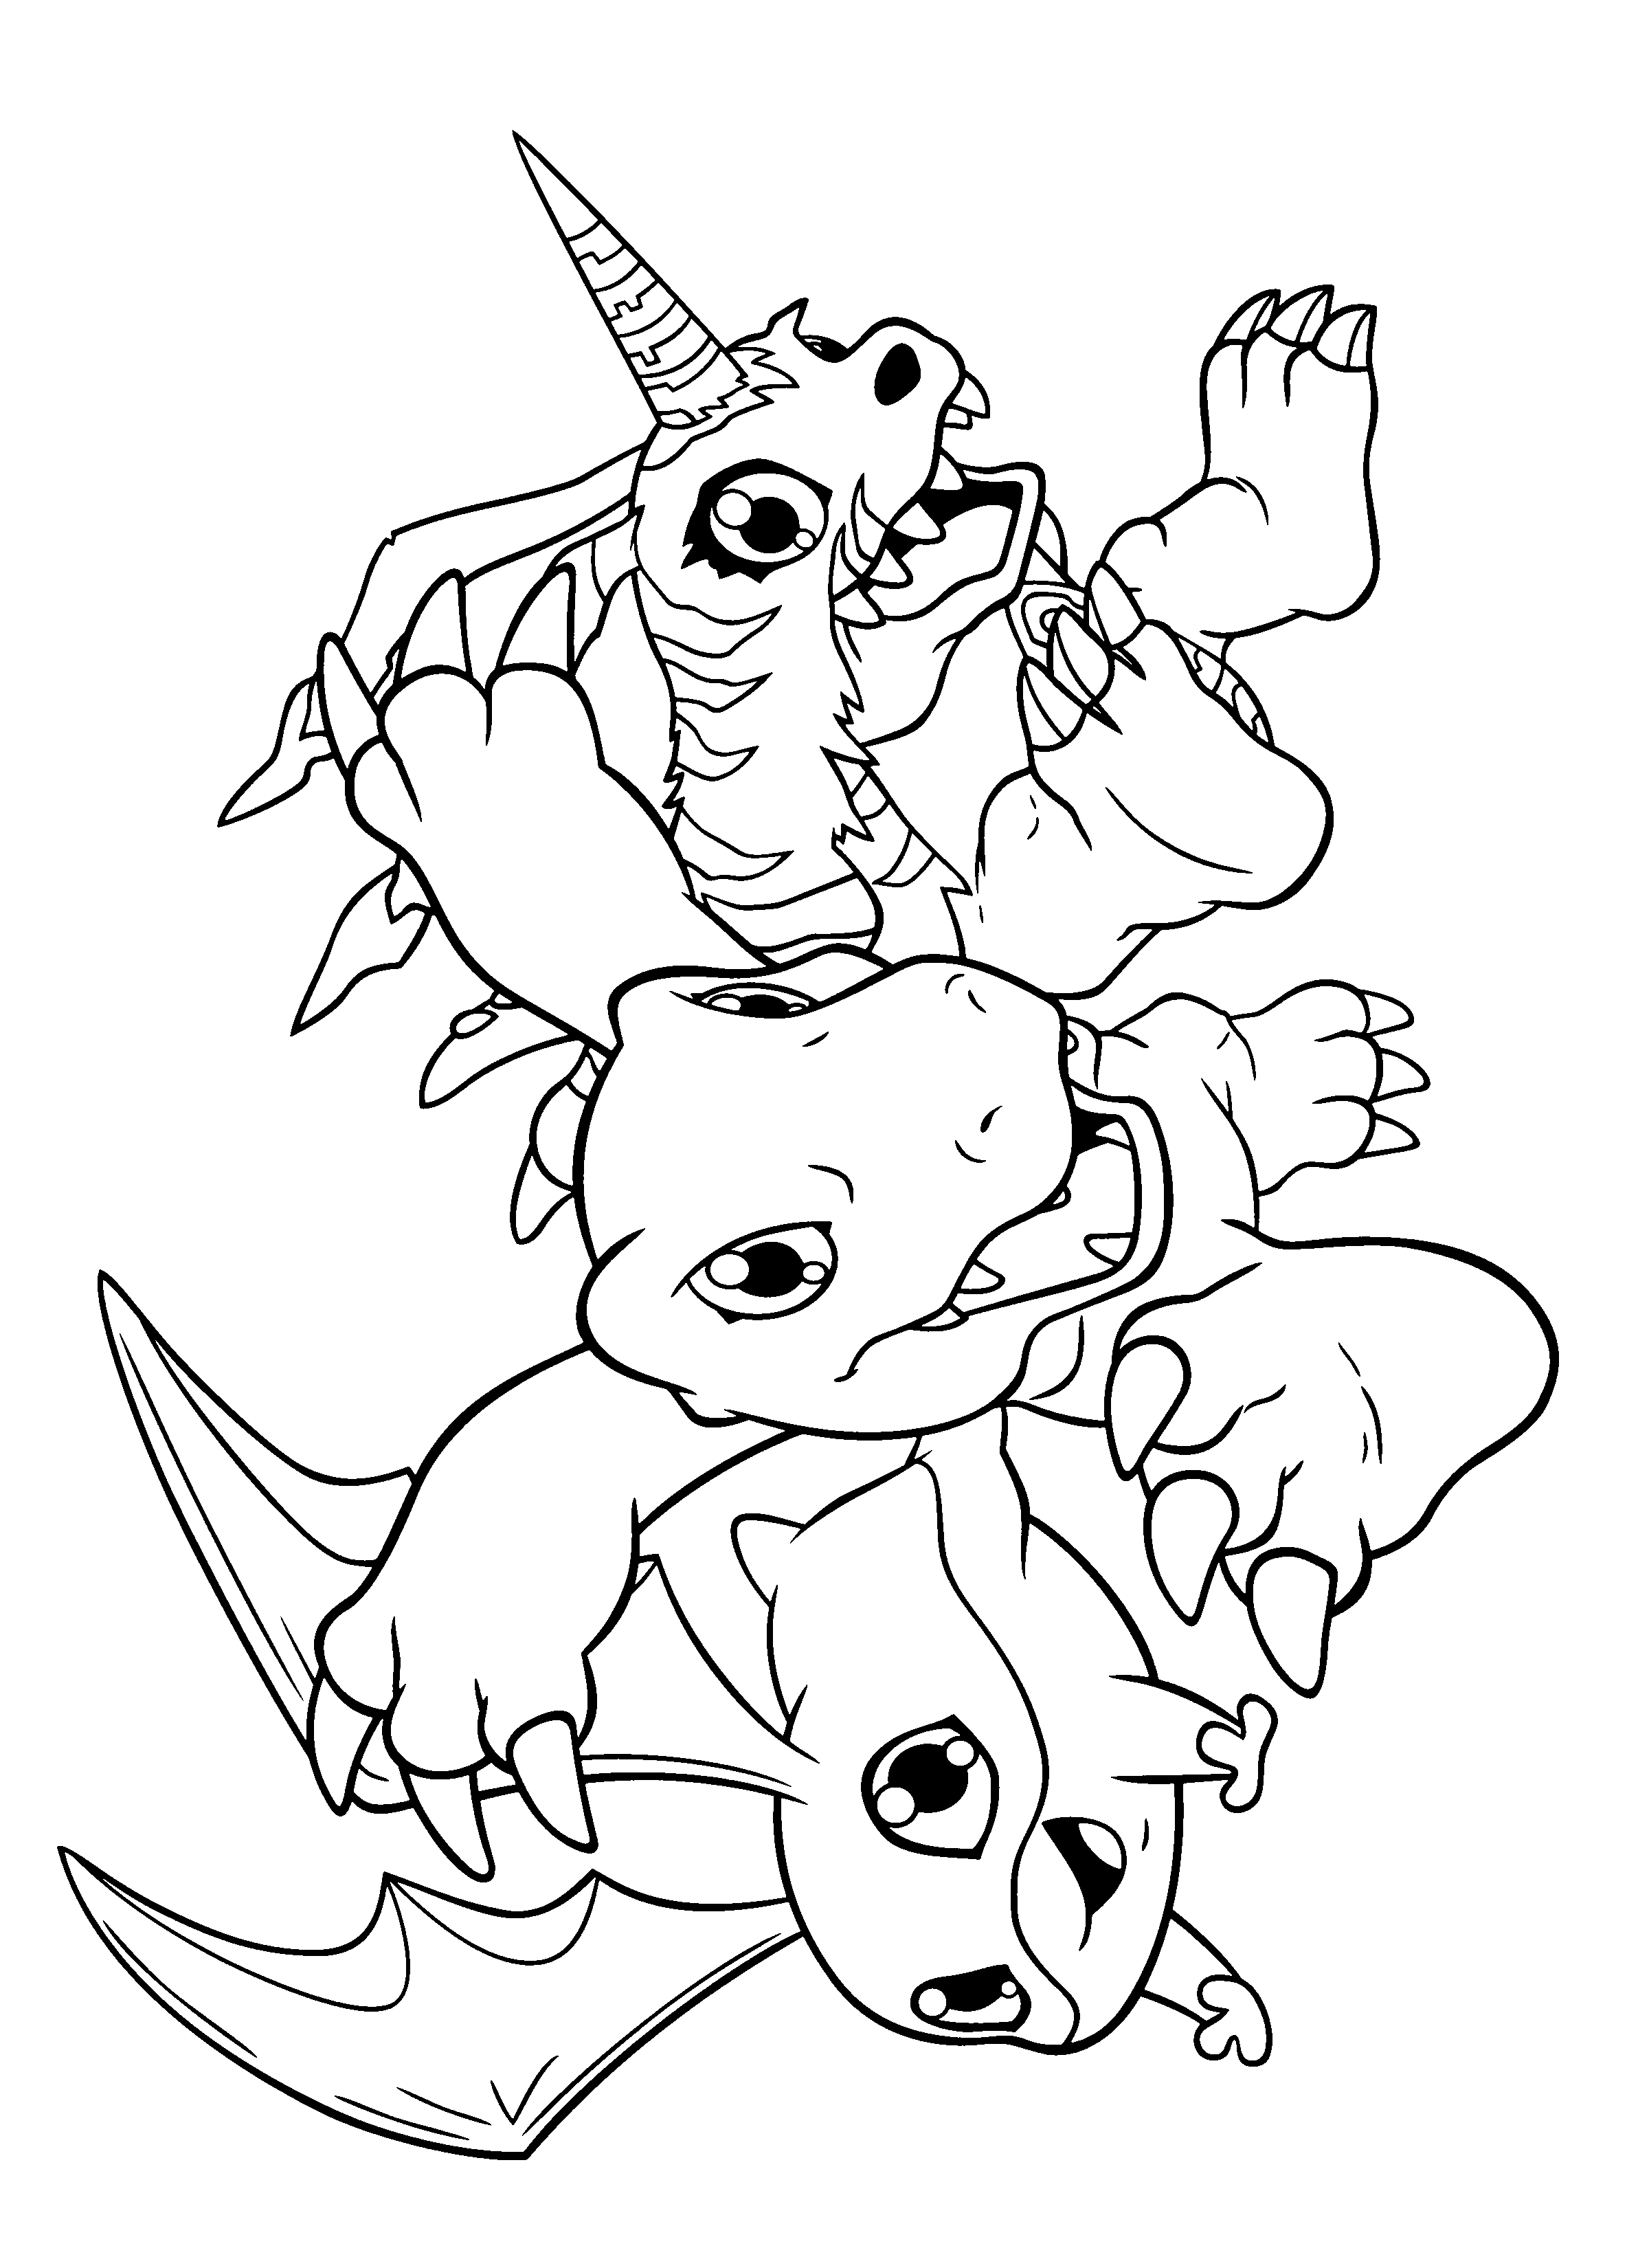 digimon coloring pages printable coloring page digimon coloring pages 71 digimon printable pages coloring